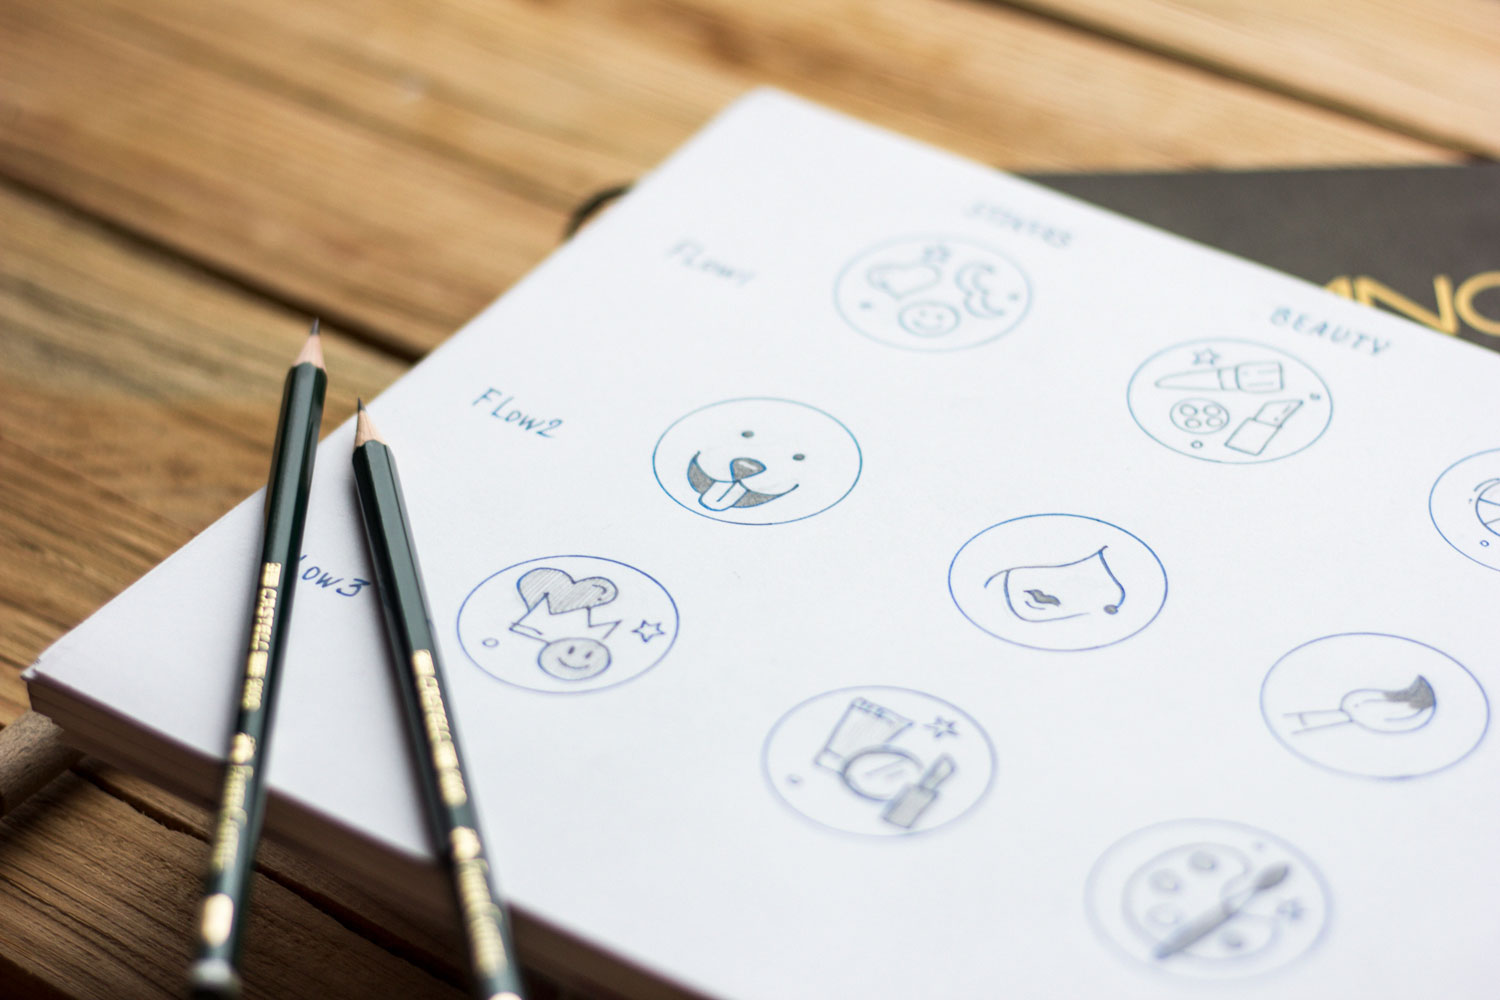 sketching icons graphic design-process tubik